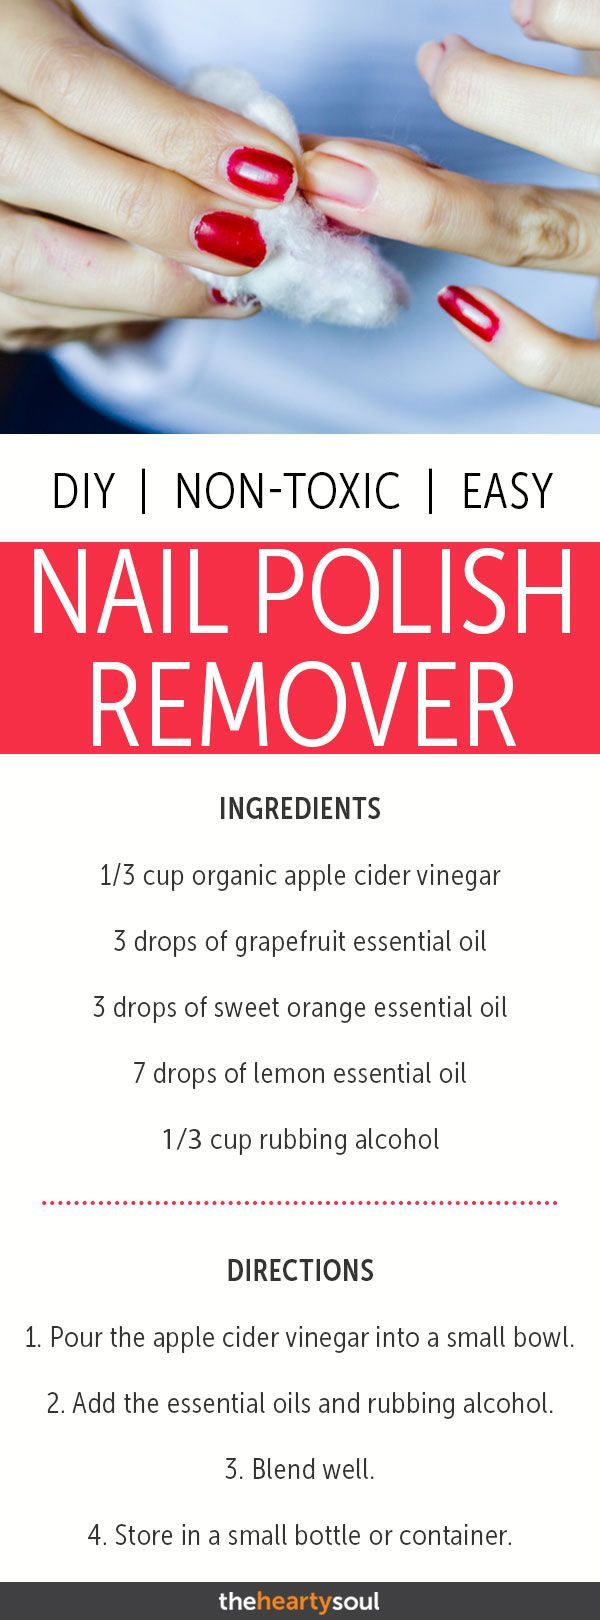 How to Make Non-Toxic Nail Polish Remover with Grapefruit, Orange, and Lemon Oils  #love #instagood...